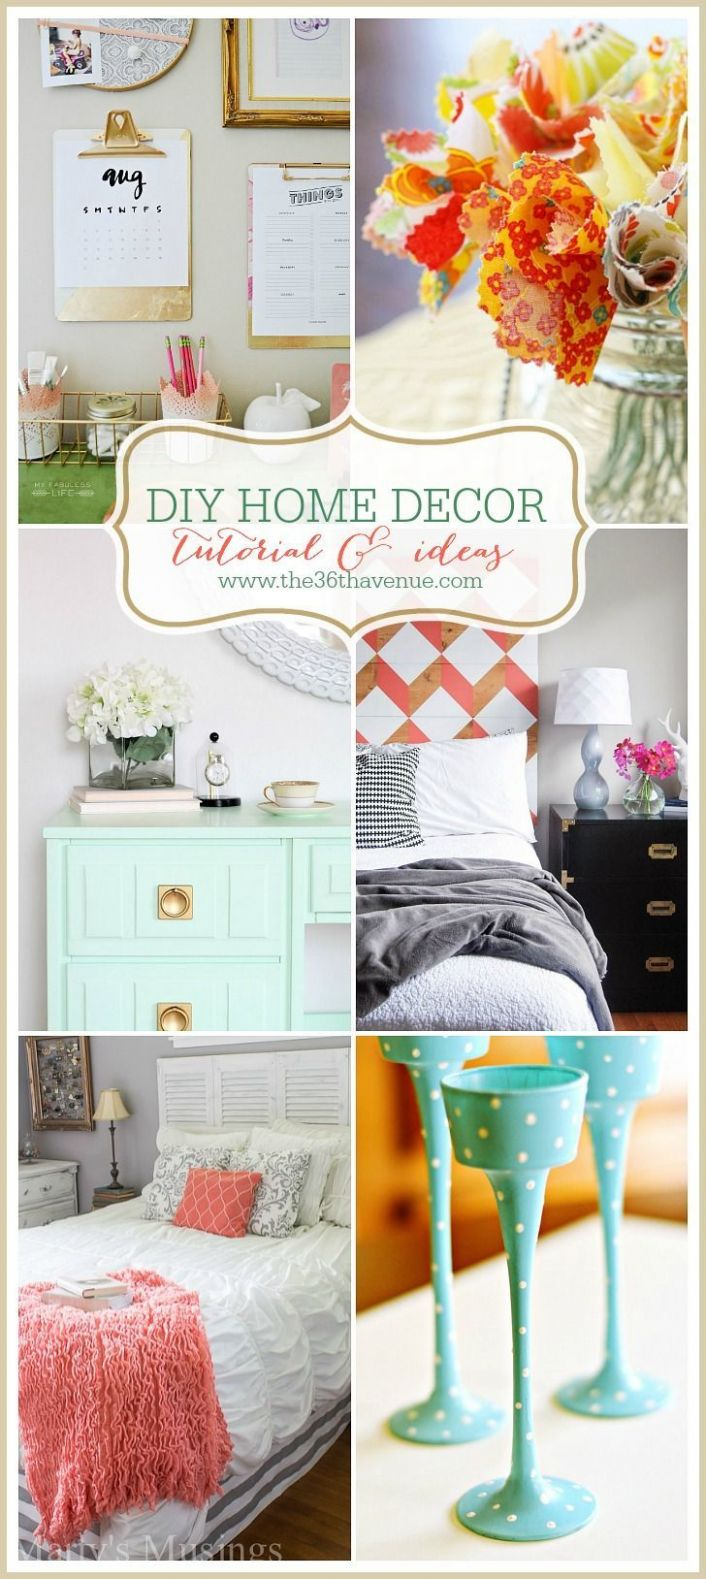 Home Decor DIY Projects | Diy home decor projects, Diy home decor ..